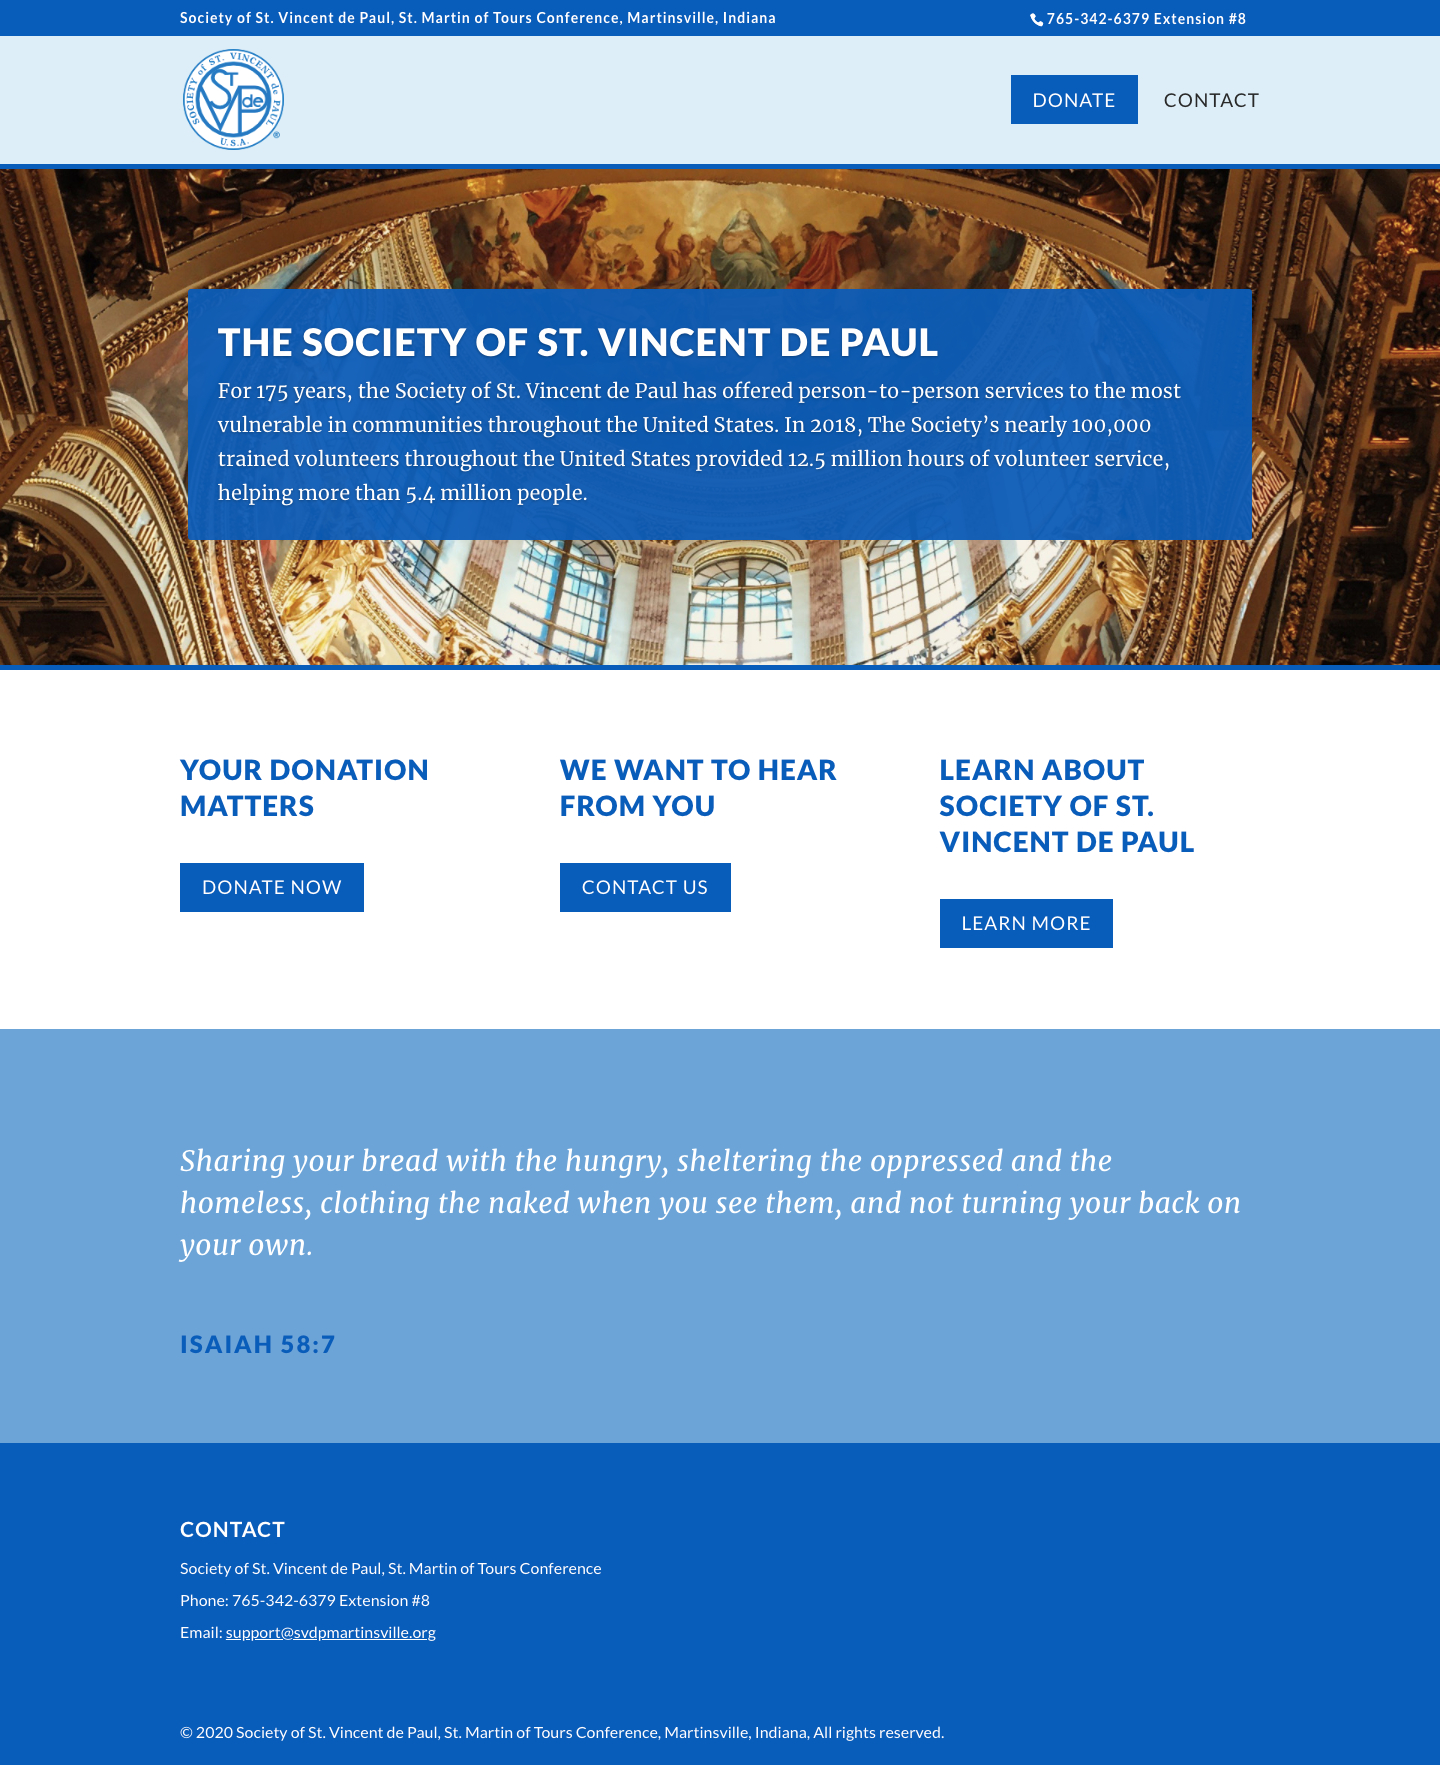 St. Vincent de Paul homepage screenshot